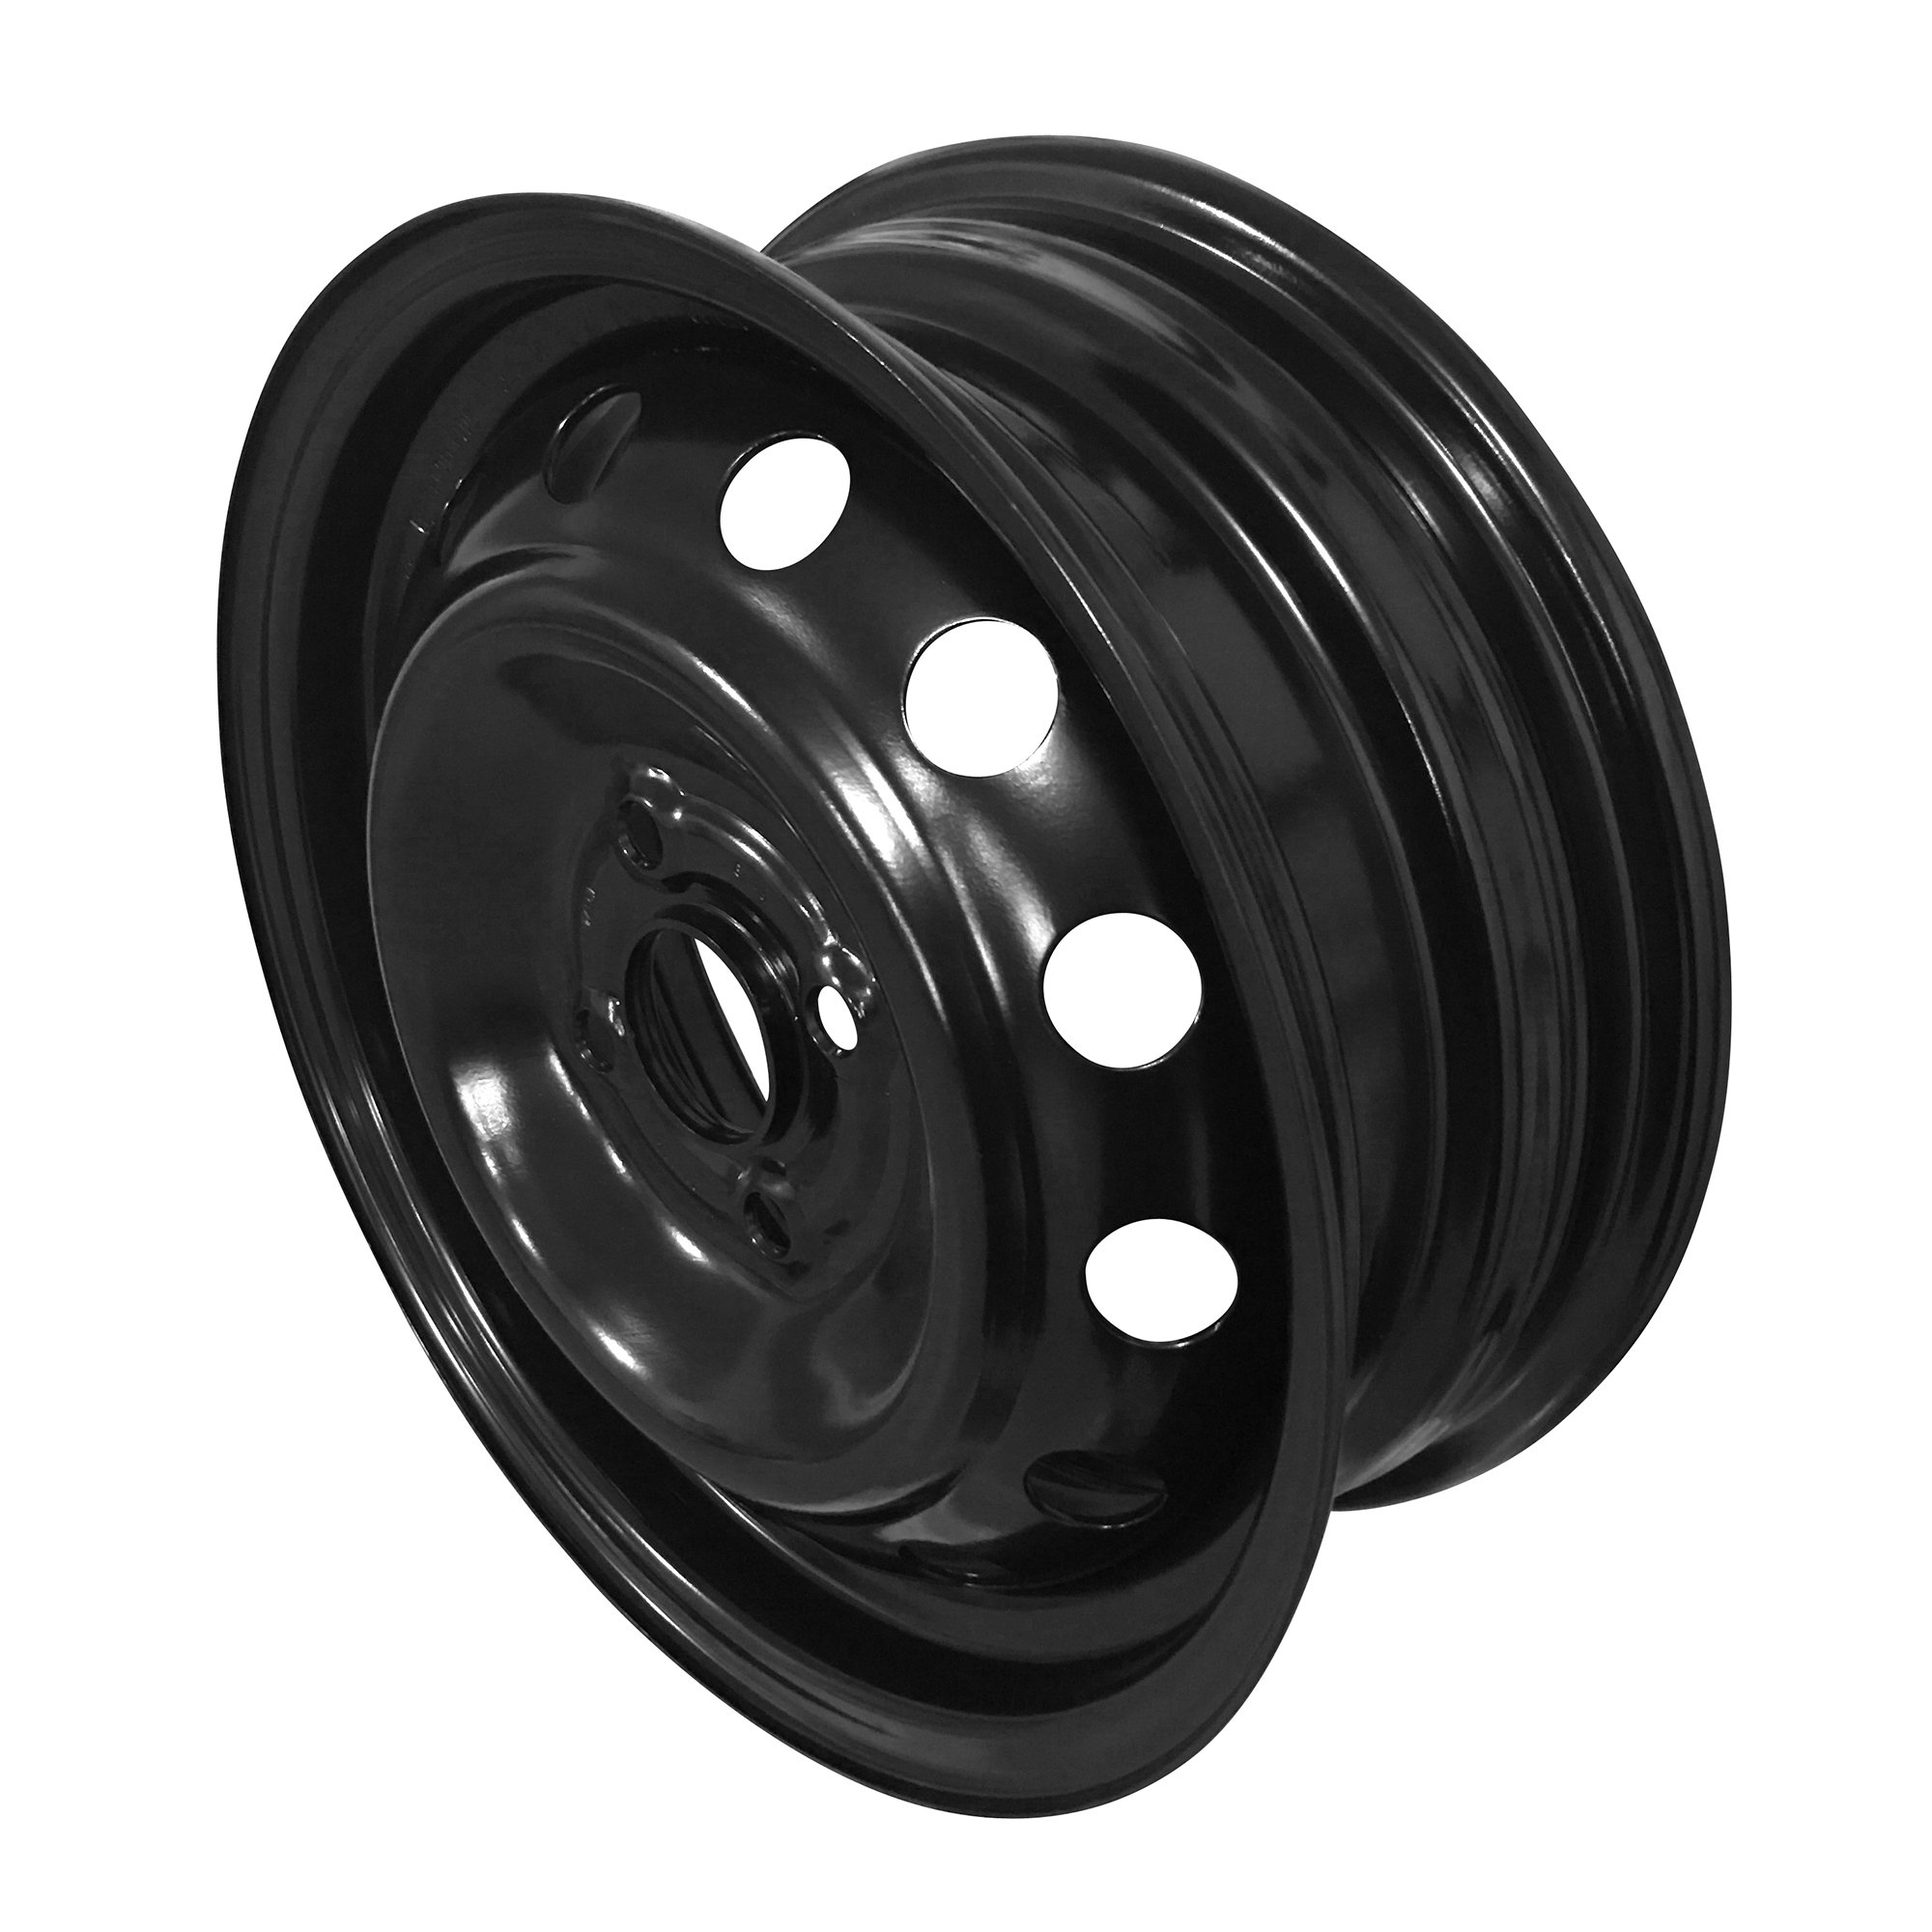 New 14x5 Inch 4 Lug 06-12 Toyota Yaris Full-Size Black Steel Replacement Wheel Rim by Road Ready Wheels (Image #1)